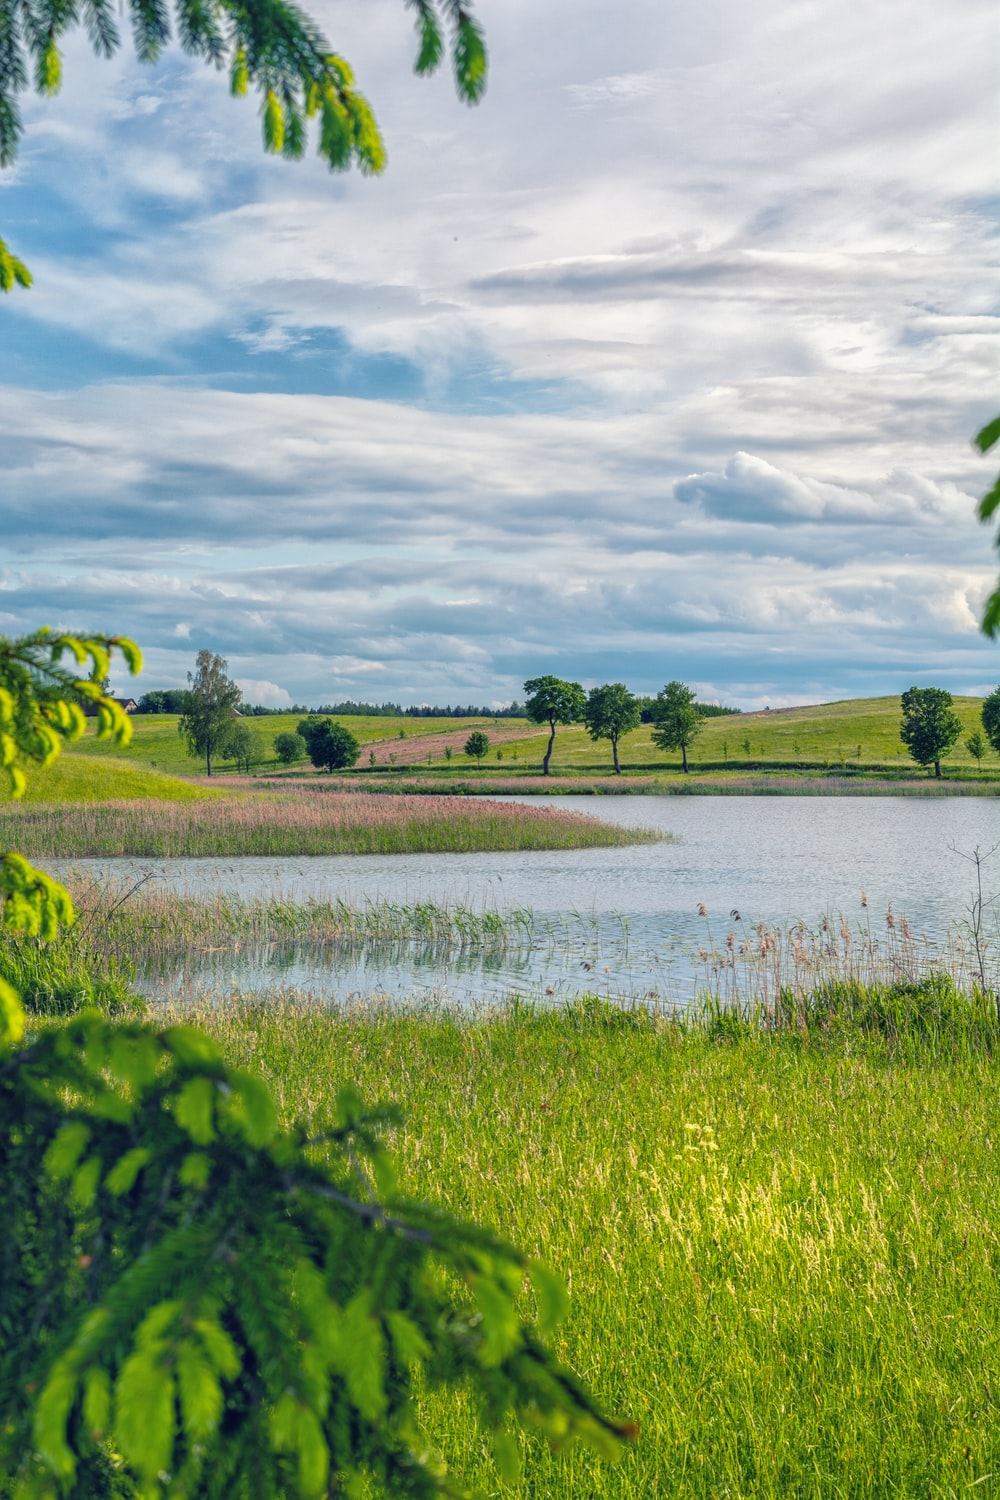 pond near green field under blue and white skies during daytime